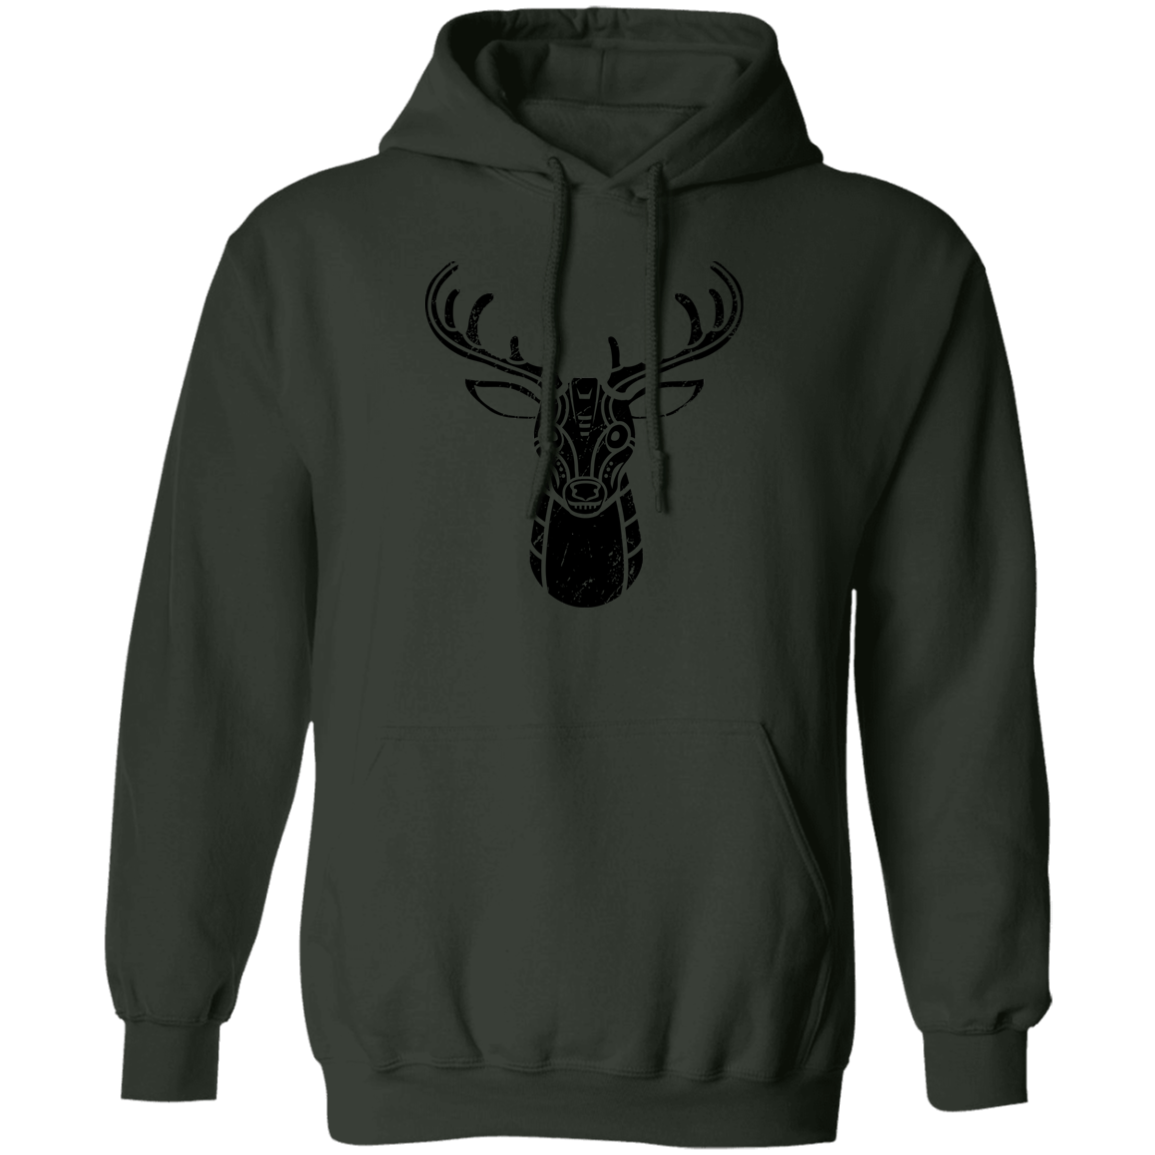 Black Distressed Emblem Hoodies for Adults (Deer/Stag)